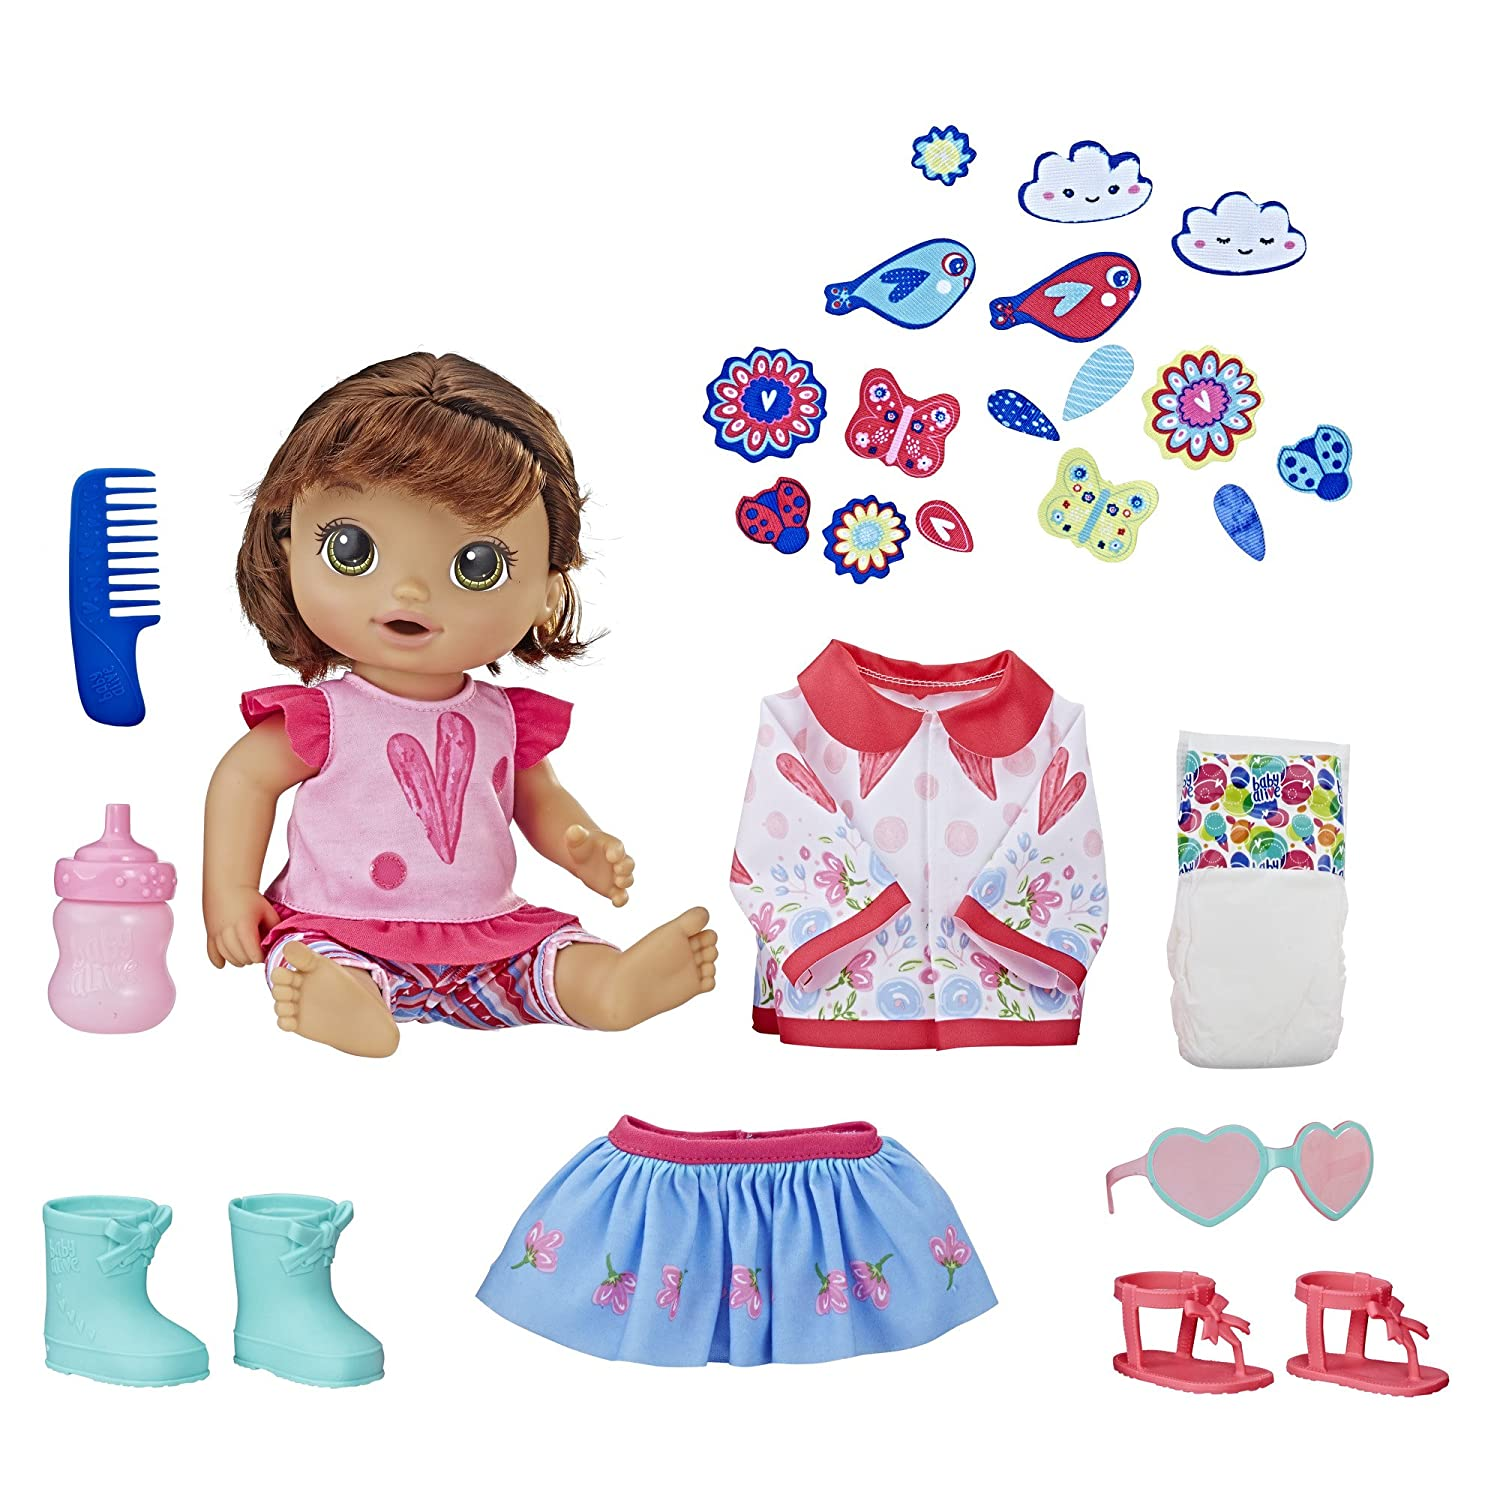 BABY ALIVE So Many Styles Baby (Brown Straight Hair) - TOY - TAX FREE